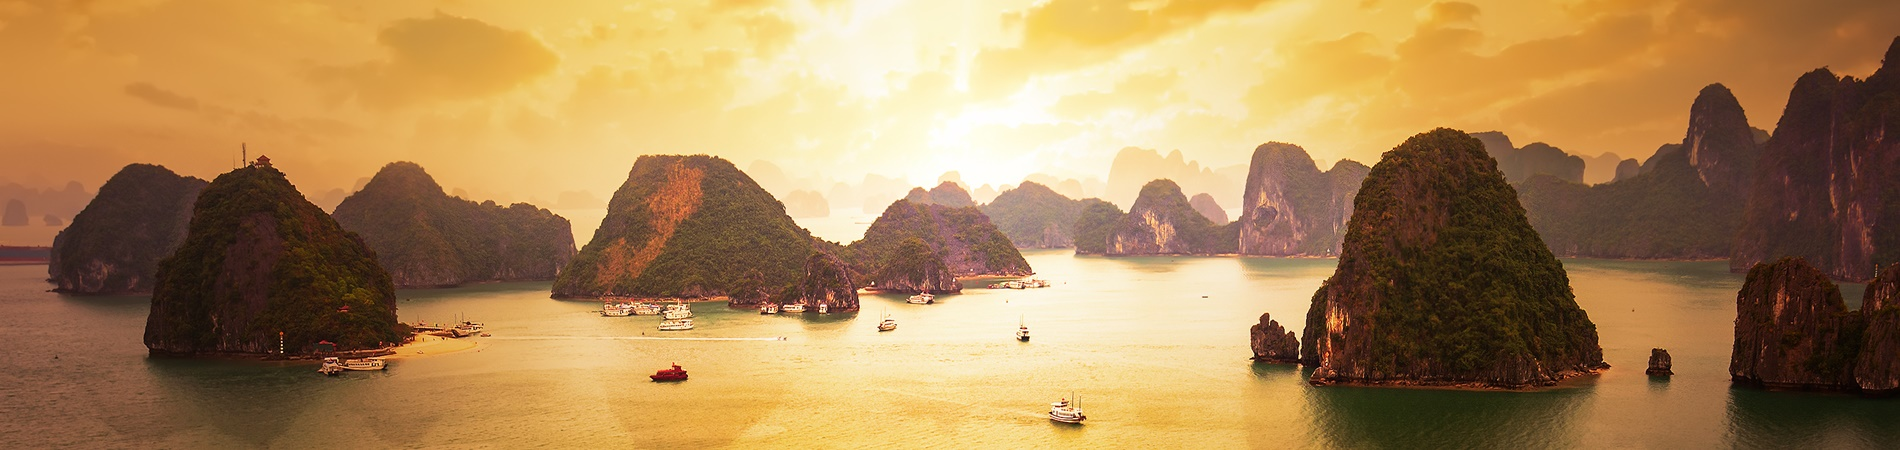 shutterstock_Vietnam Halong Bay Sunset 2 Header